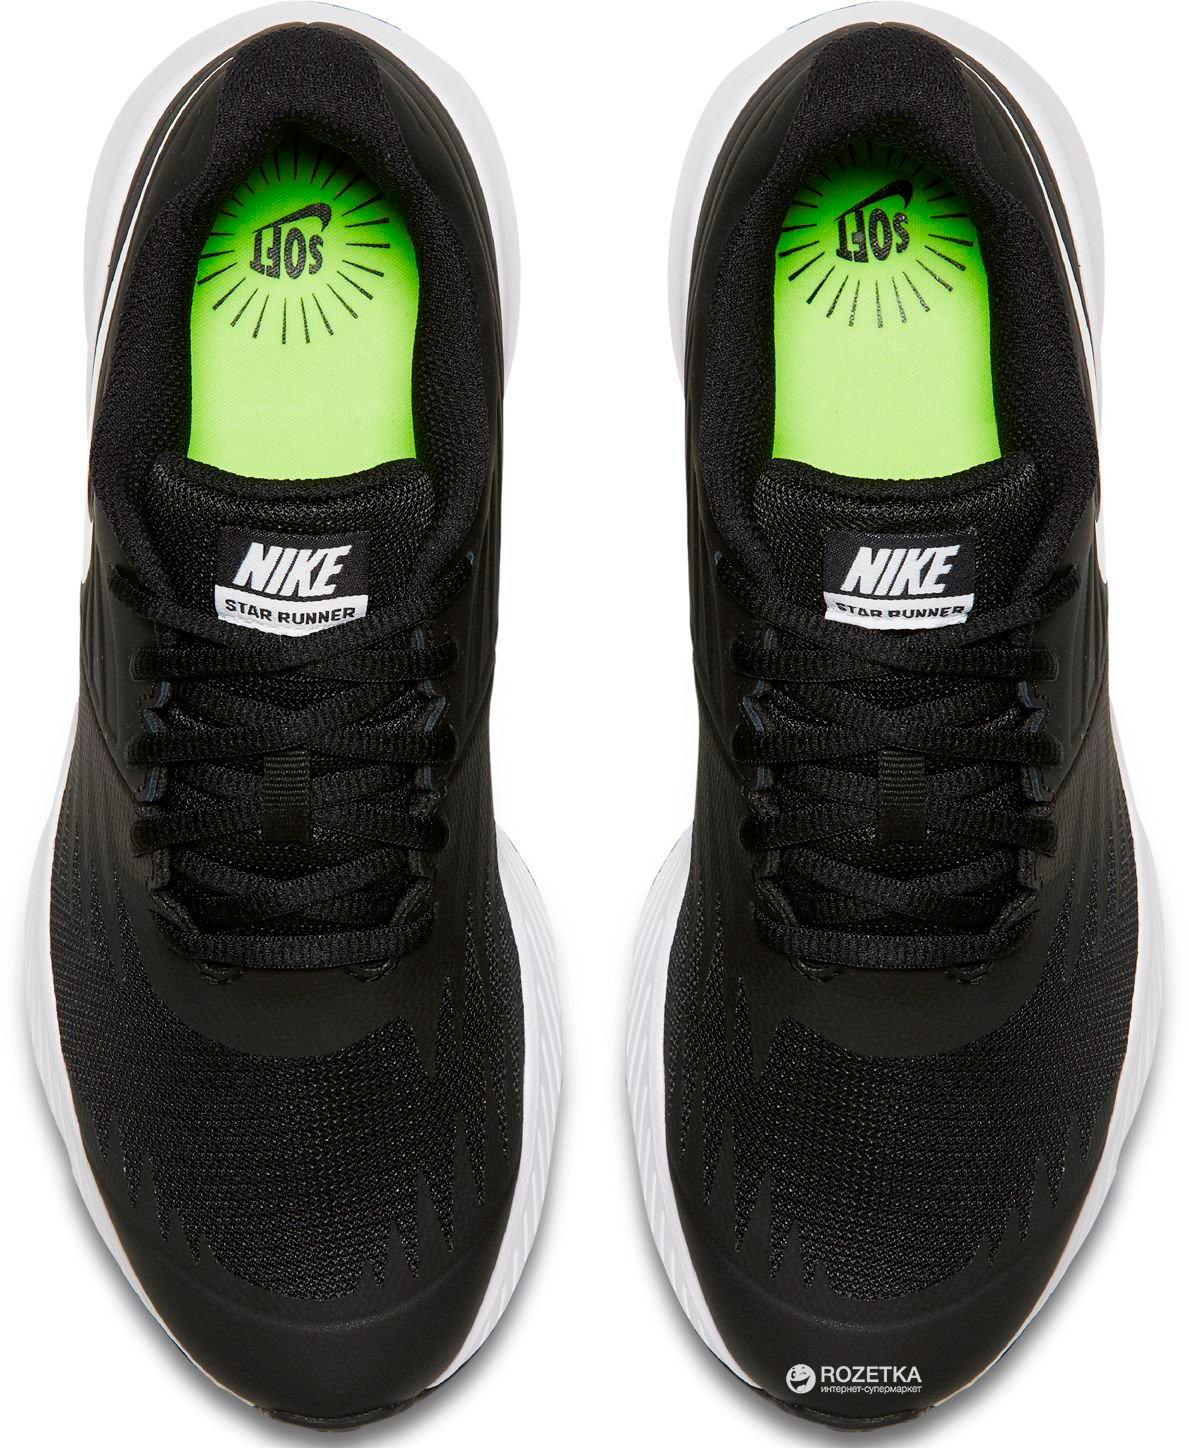 official photos 1123d f7e48 Кроссовки Nike Star Runner Gs 907254-001 33.5 (4.5Y) 23.5 см (